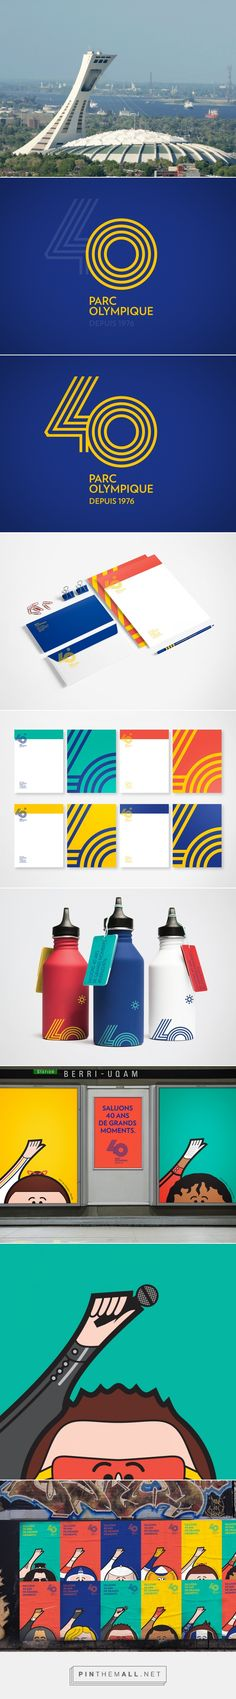 Parc Olympic 40th anniversary | lg2boutique on Behance - created via https://pinthemall.net